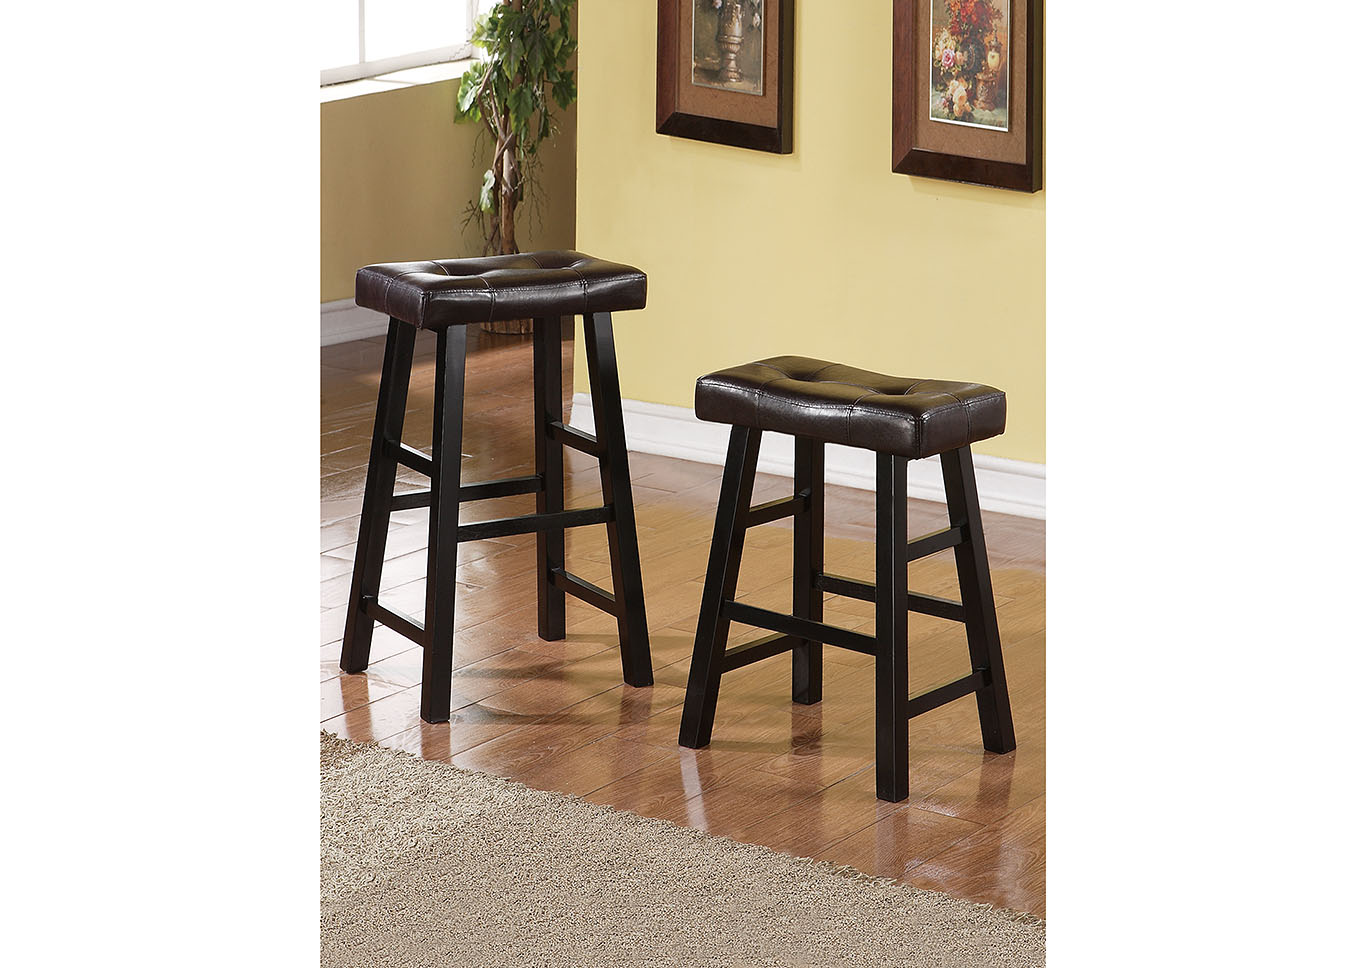 bayit furniture brown faux leather counter stool